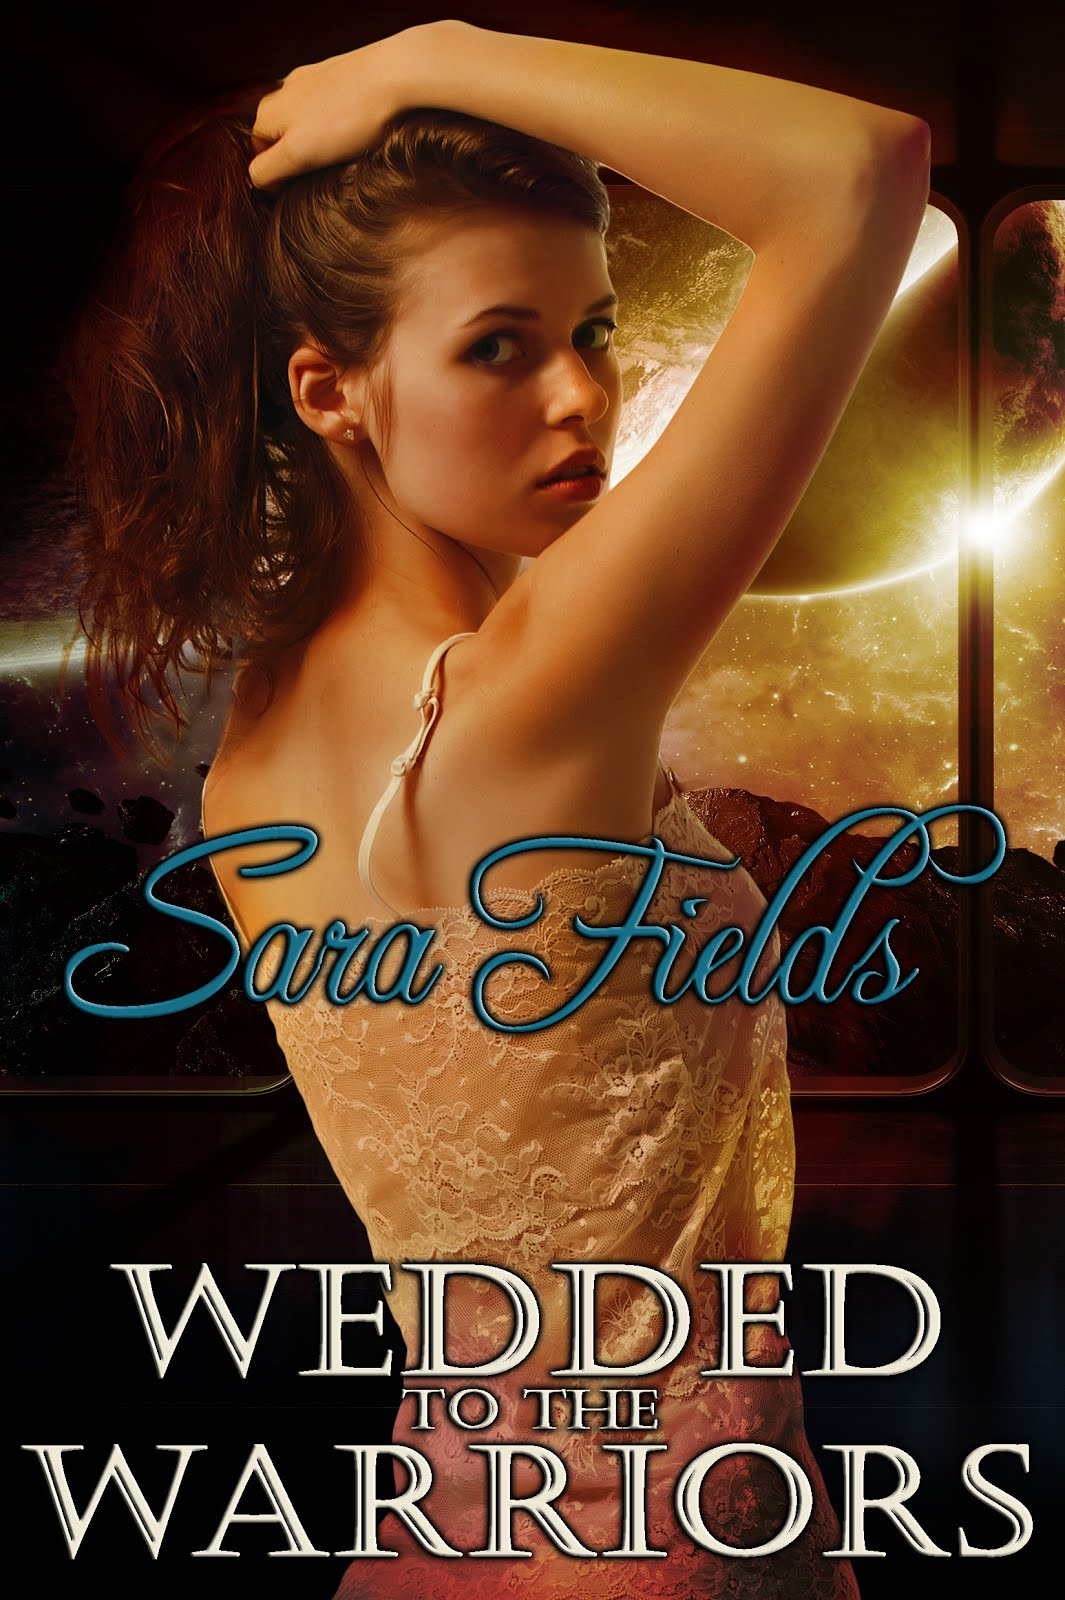 Wedded to the Warriors - Captive Brides Book 1